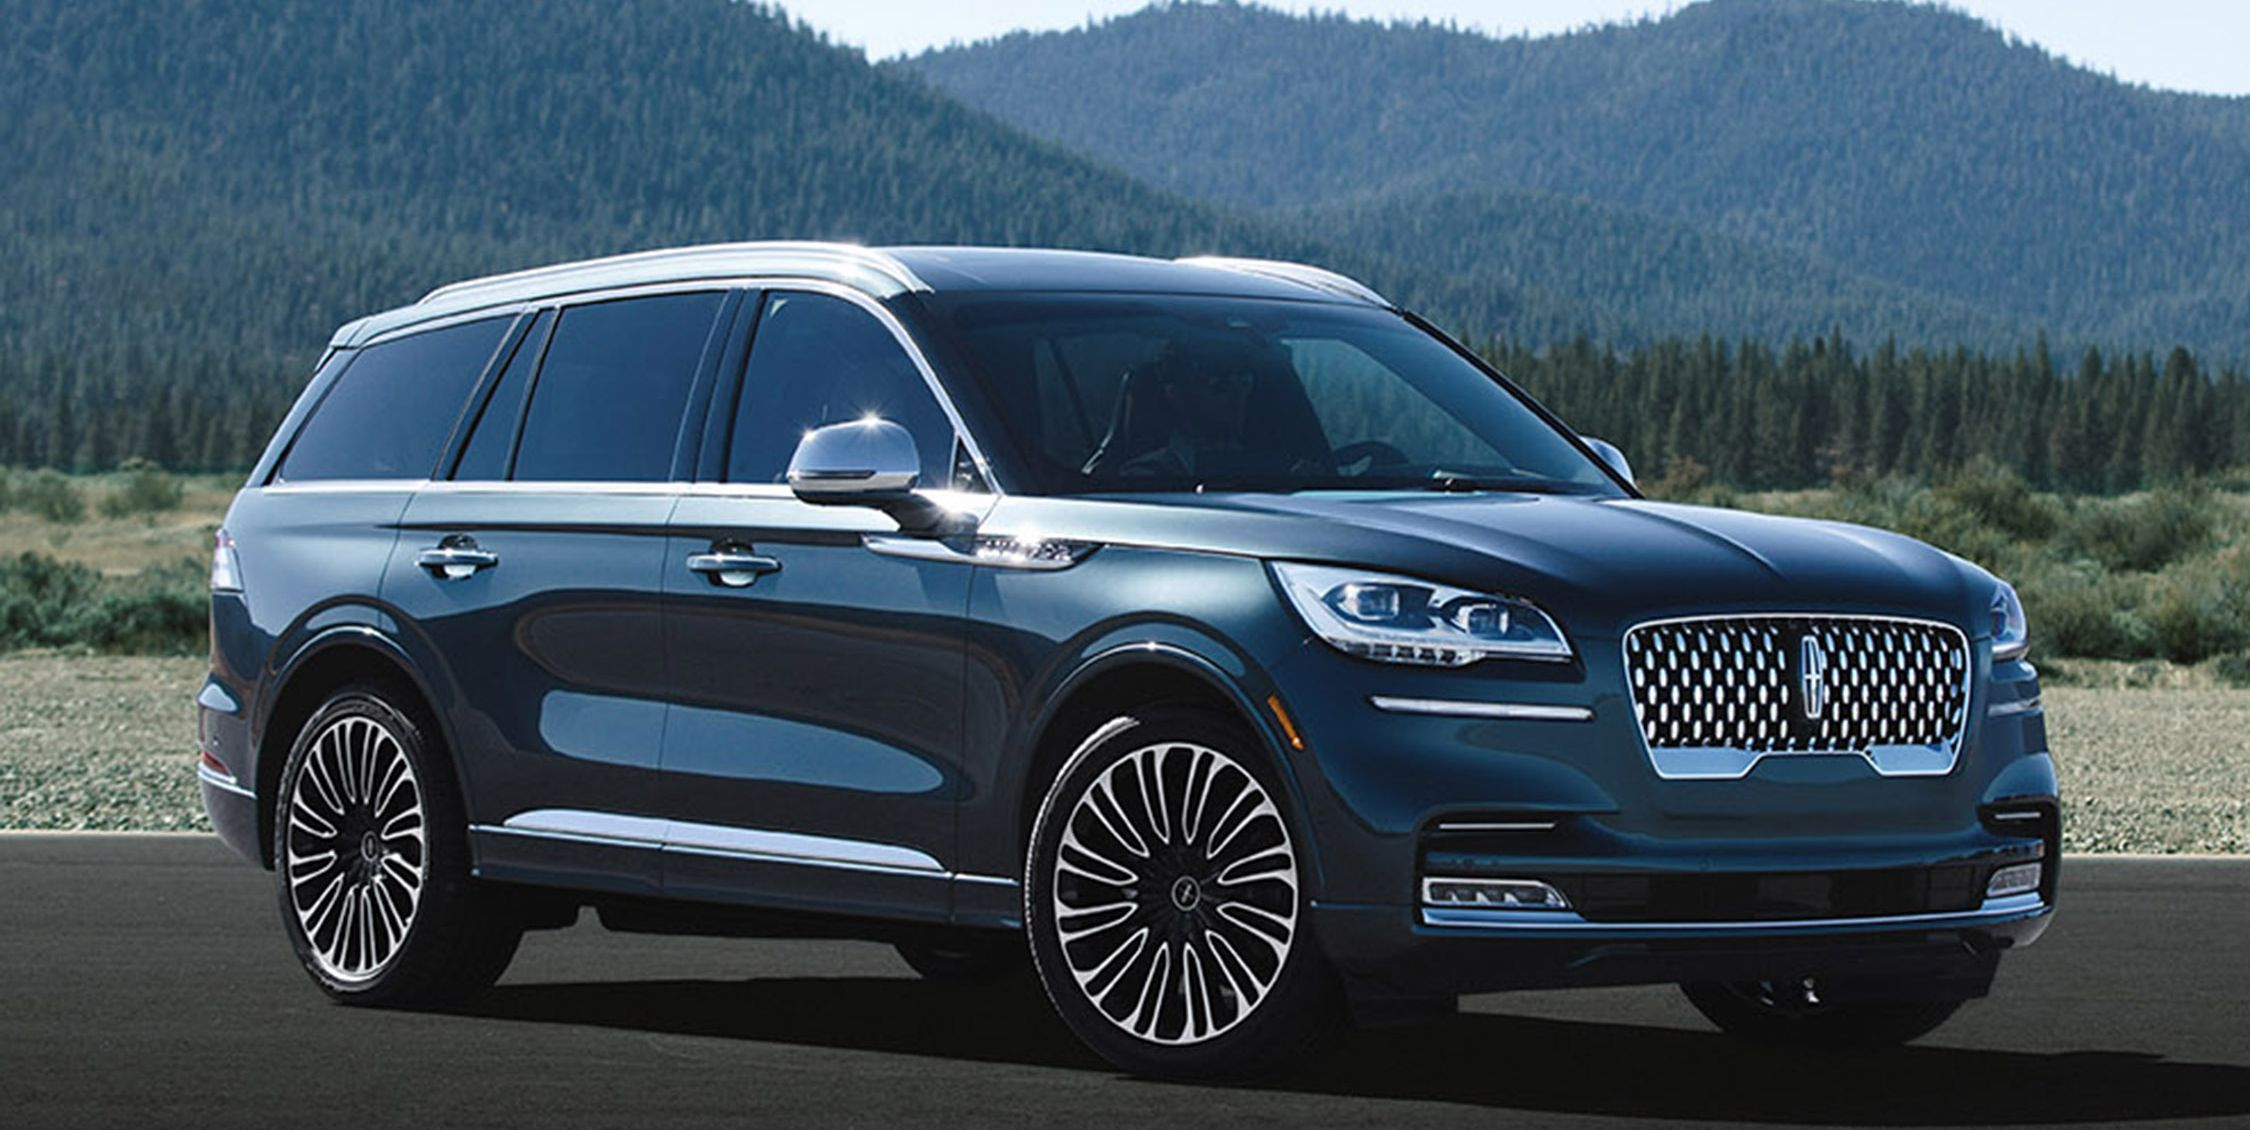 How We'd Spec It: The 2020 Lincoln Aviator, Somewhat Shy of Fully Loaded